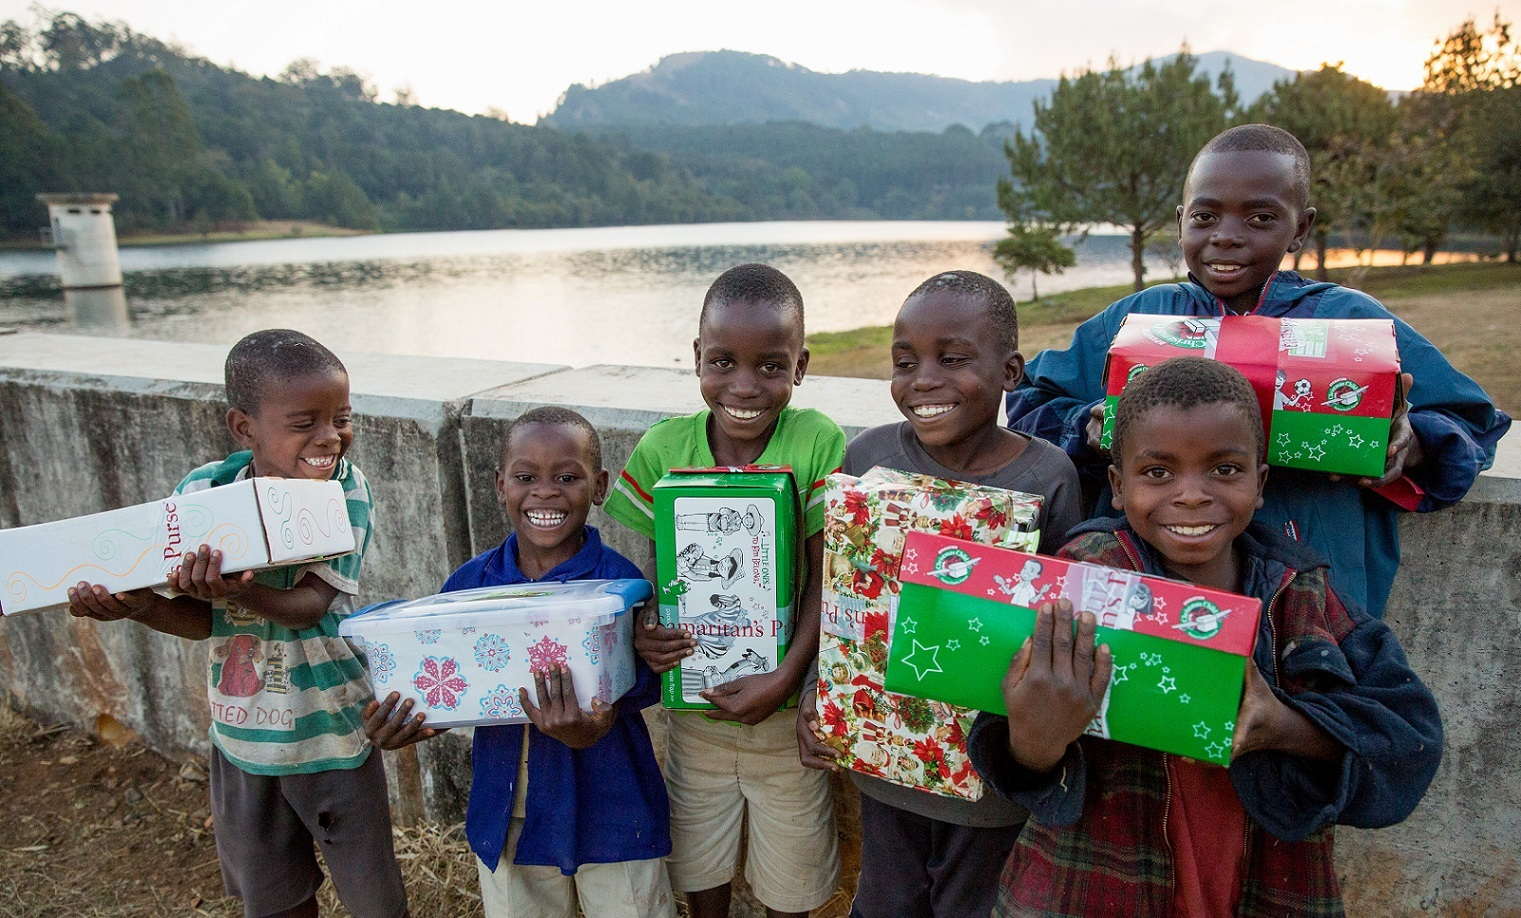 shoebox distribution at Mulunguzi Dam in Zomba, Malawi